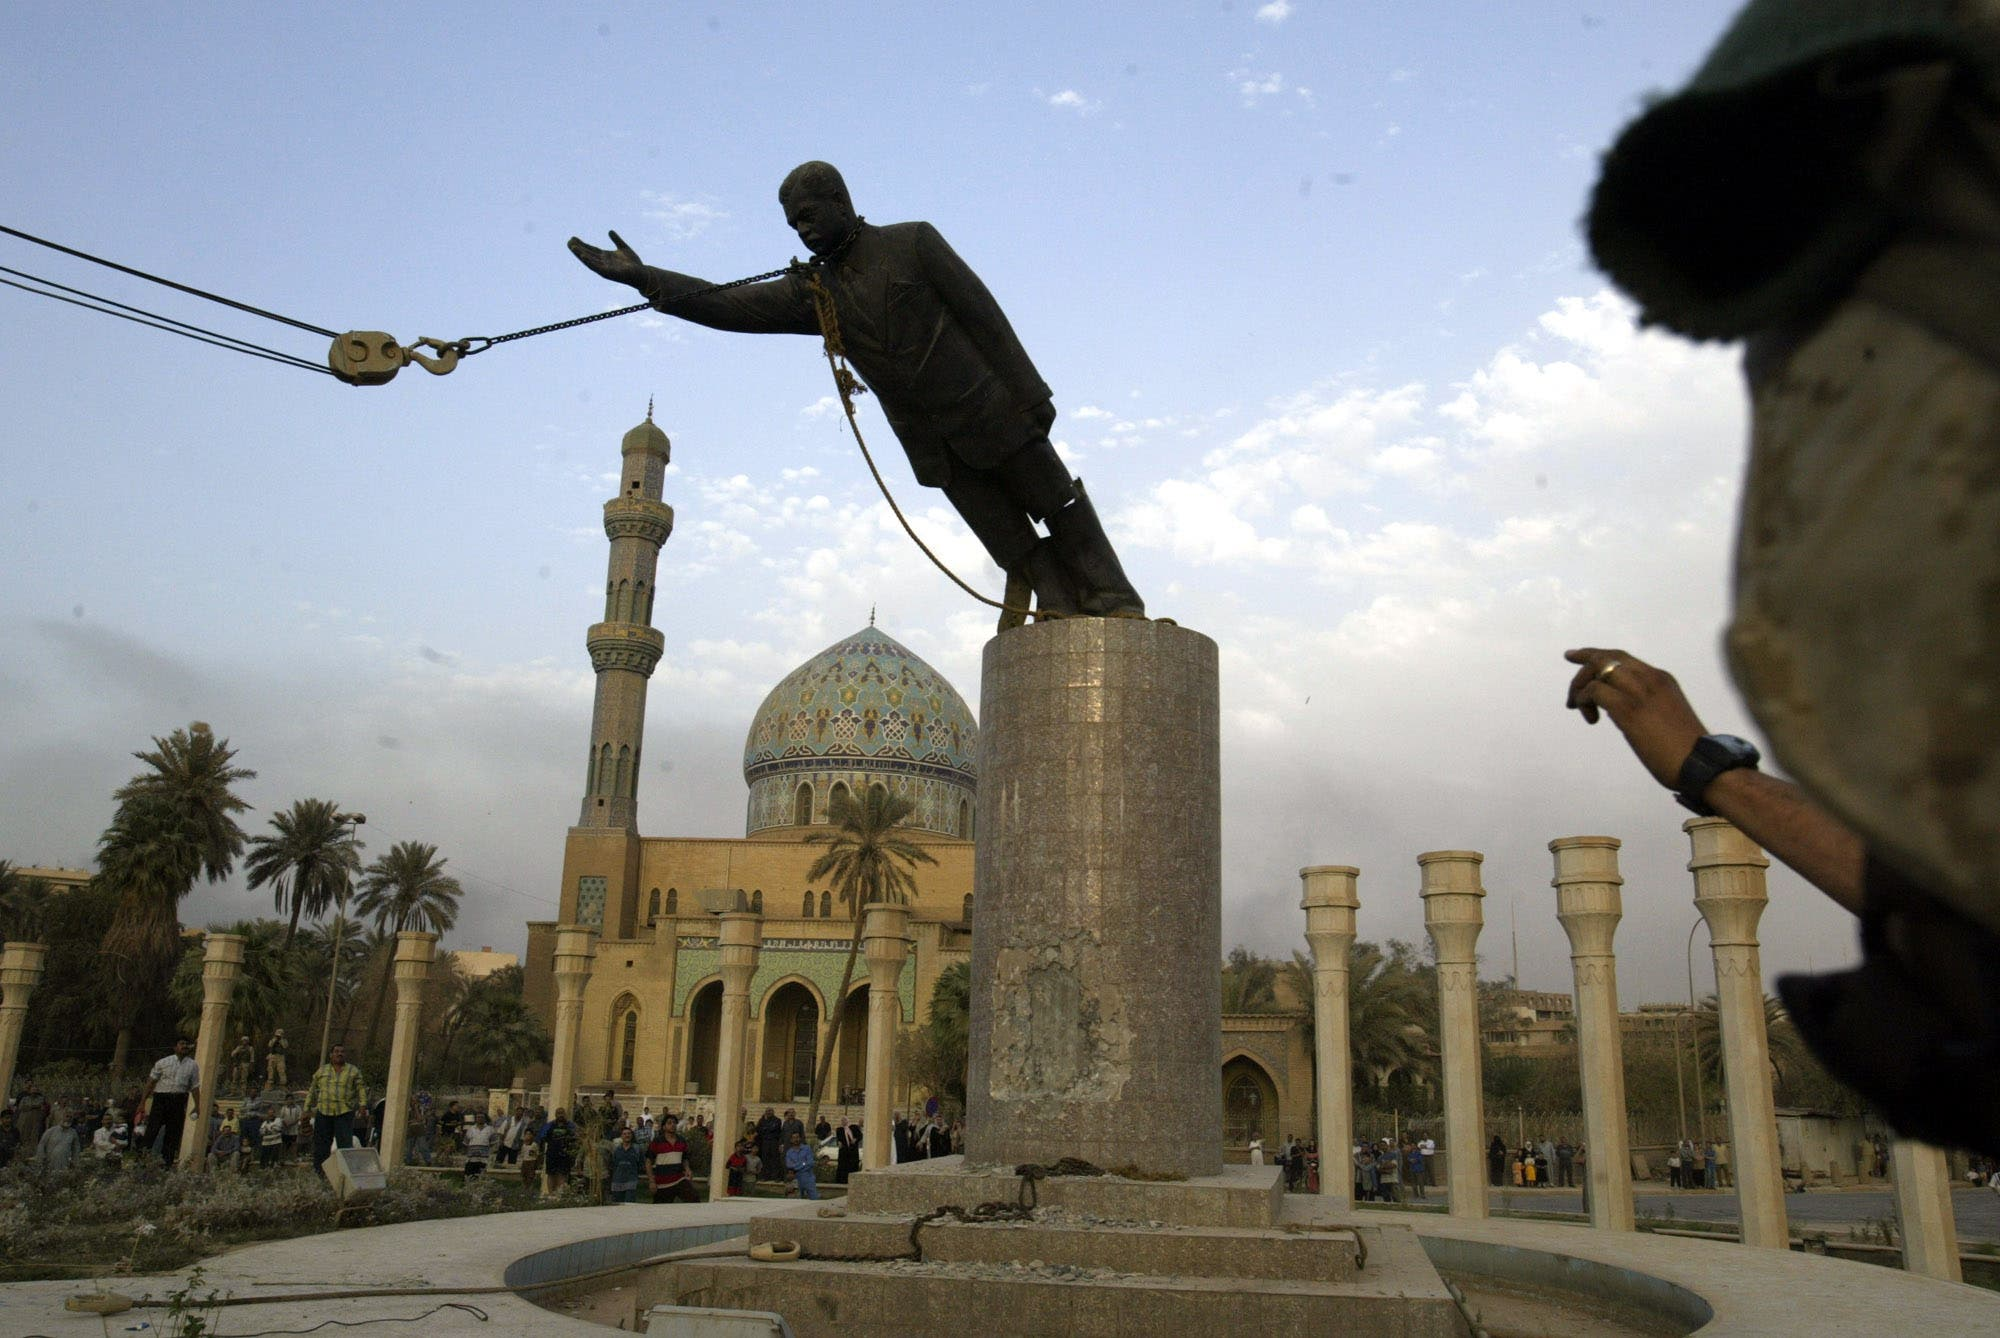 A U.S. marine watches a statue of Saddam Hussein being toppled in a square downtown Baghdad in 2003. (File photo: AP)